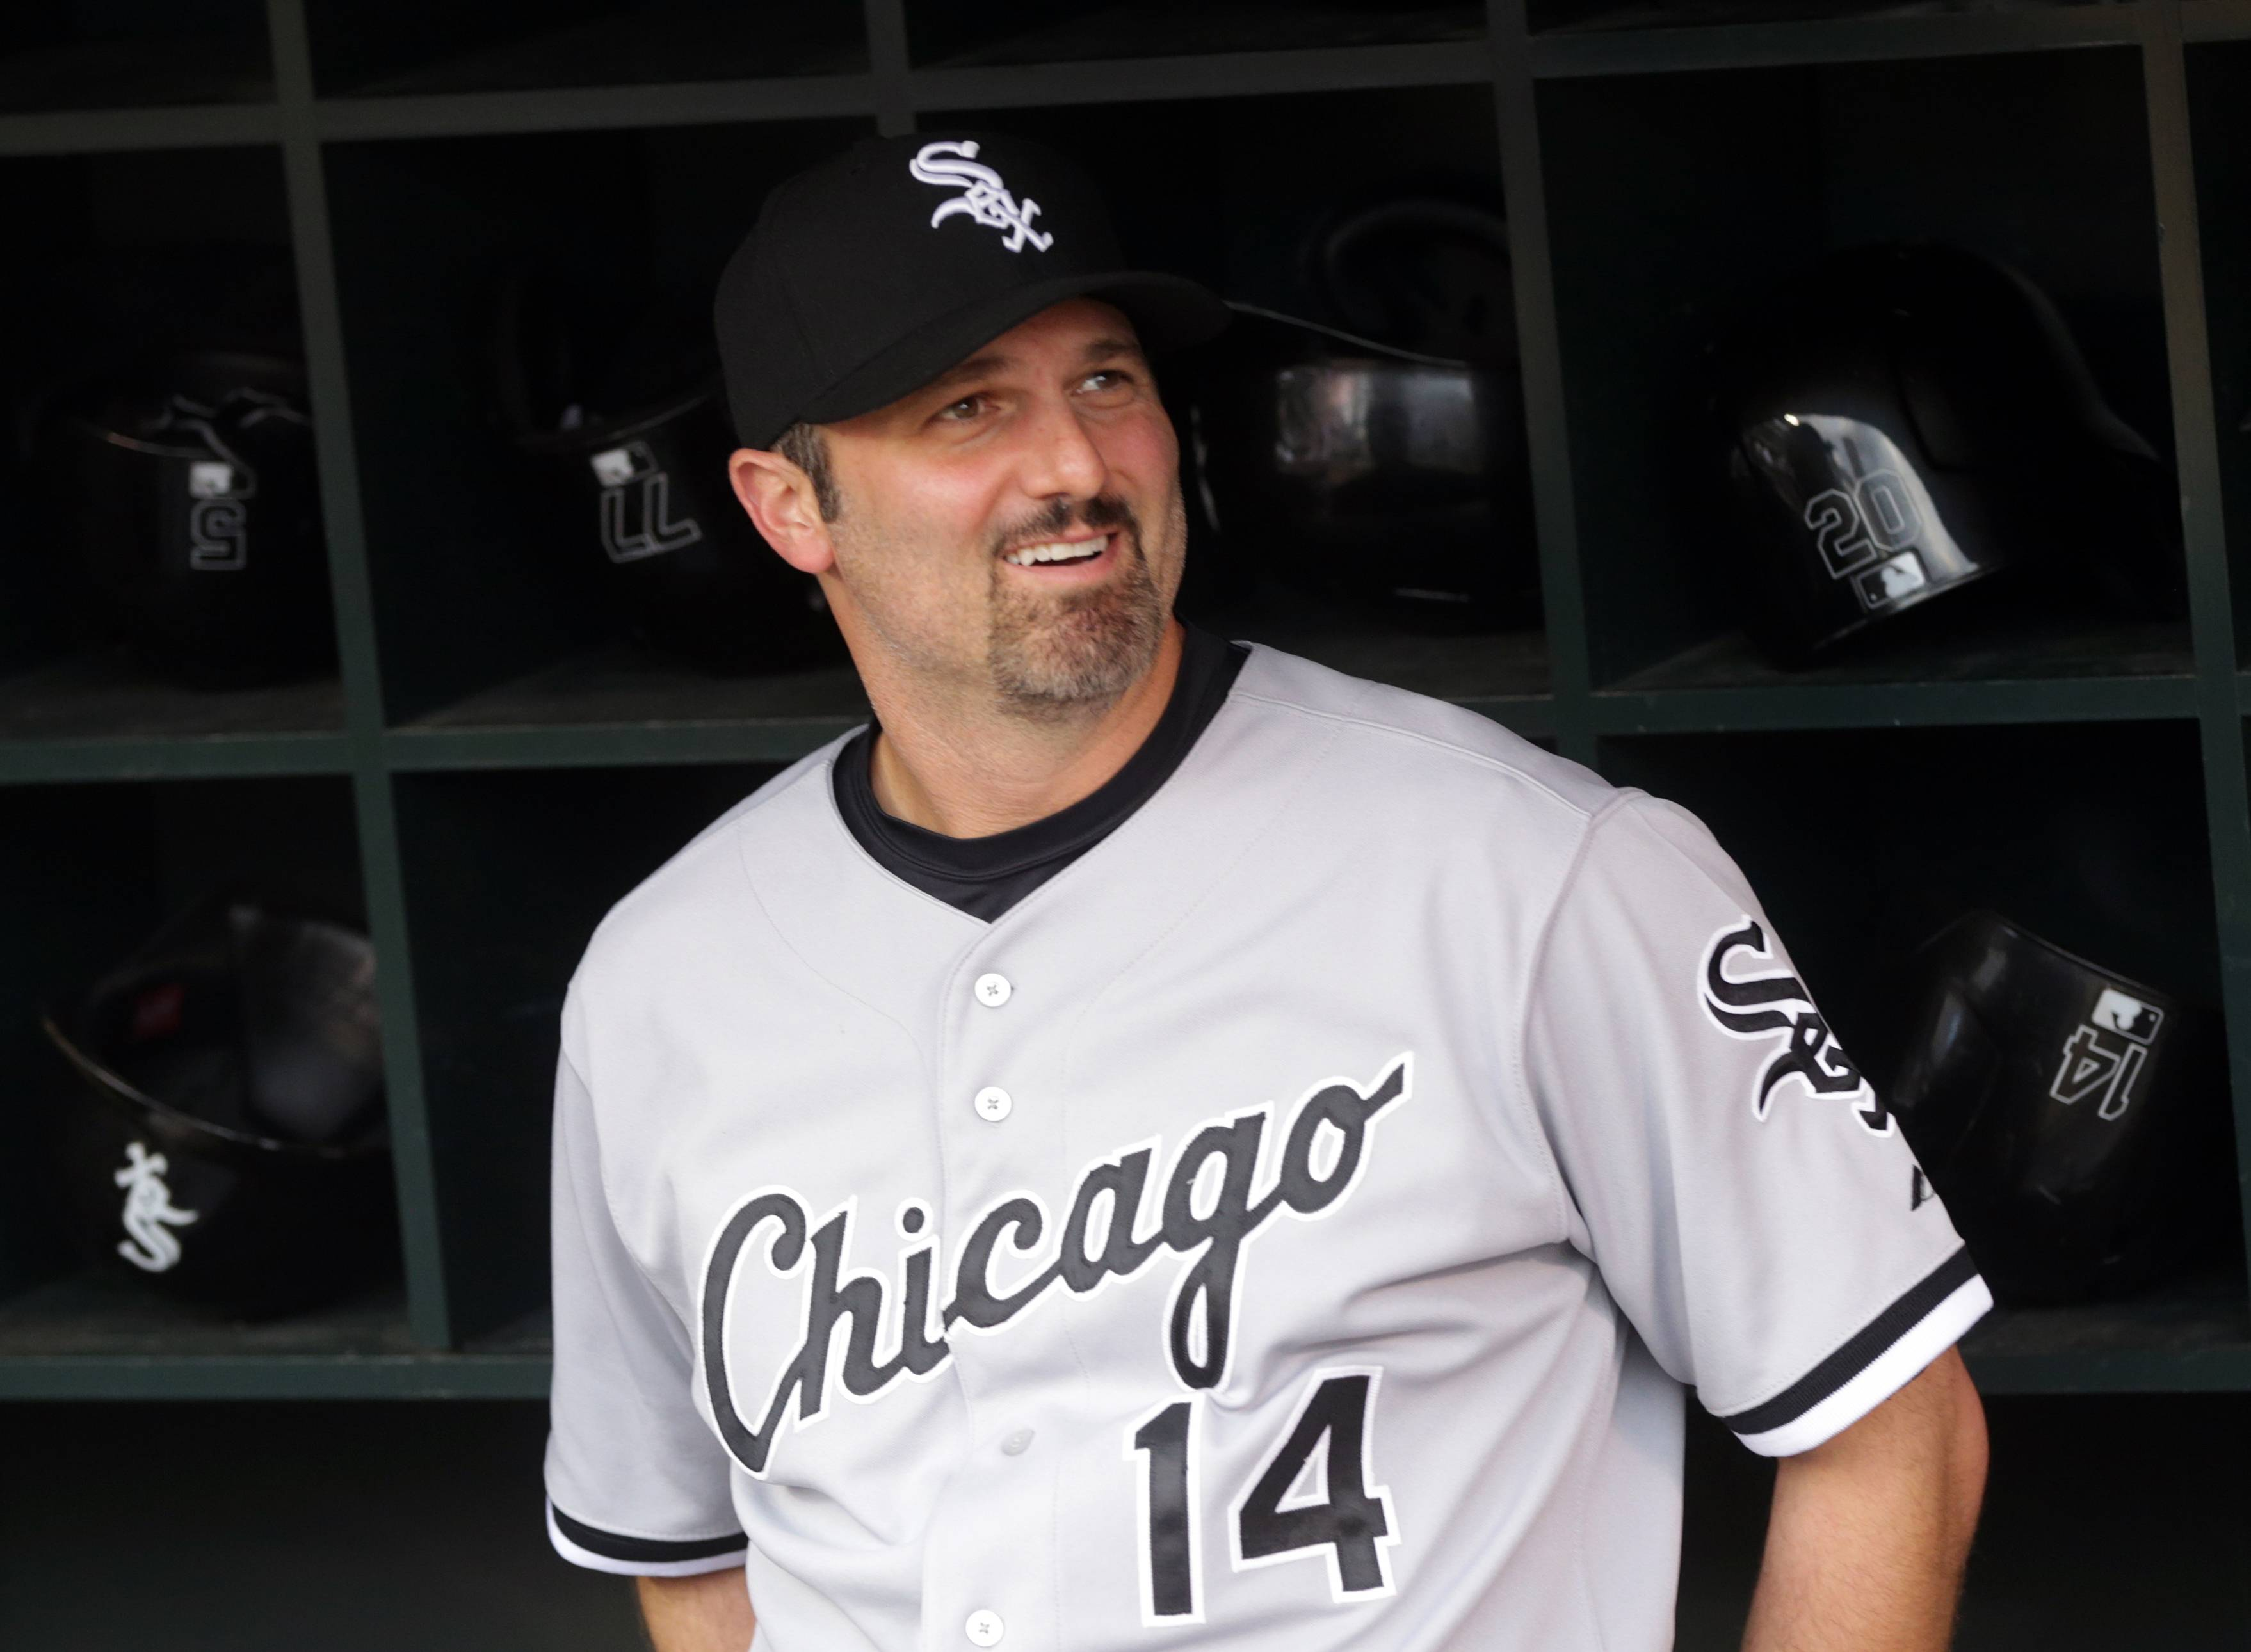 Chicago White Sox' Paul Konerko watches video highlights before he was presented a large bottle of wine by Minnesota Twins' Joe Mauer and Glen Perkins before Wednesday's game.